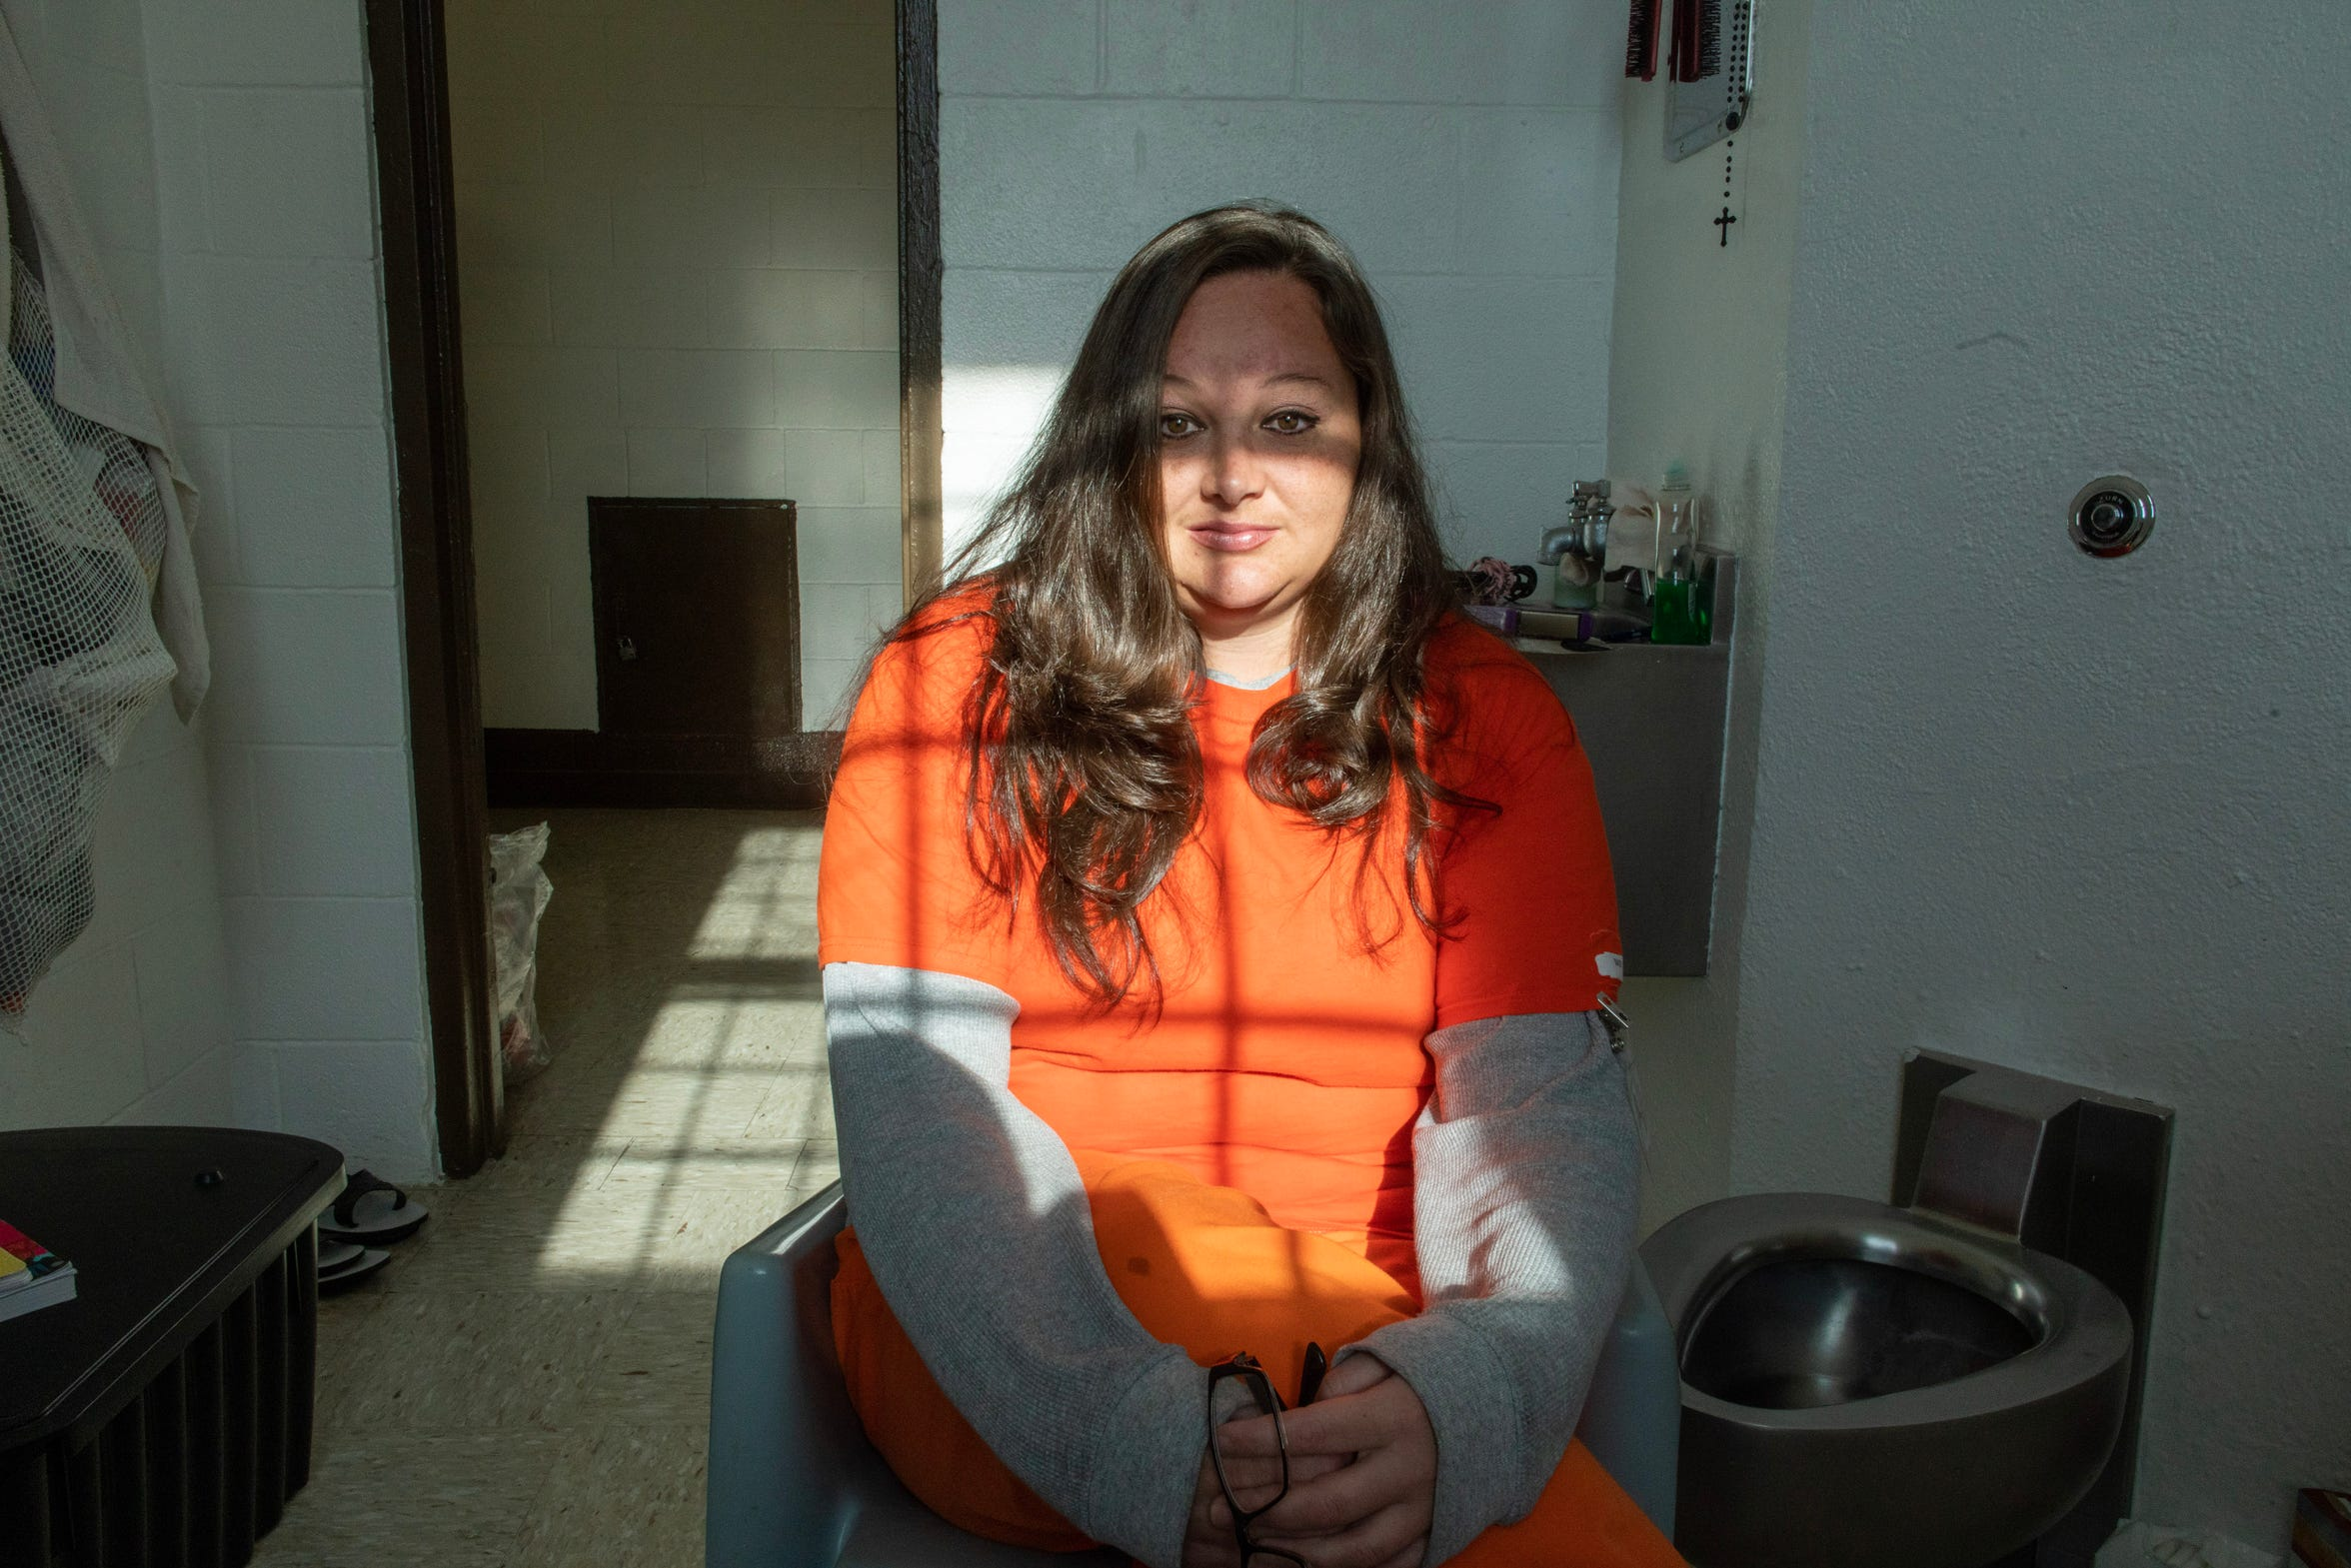 Stephanie Baker in her cell in the Springer Correctional Center in Springer. Stephanie spent nearly three years at the facility before her release in October.